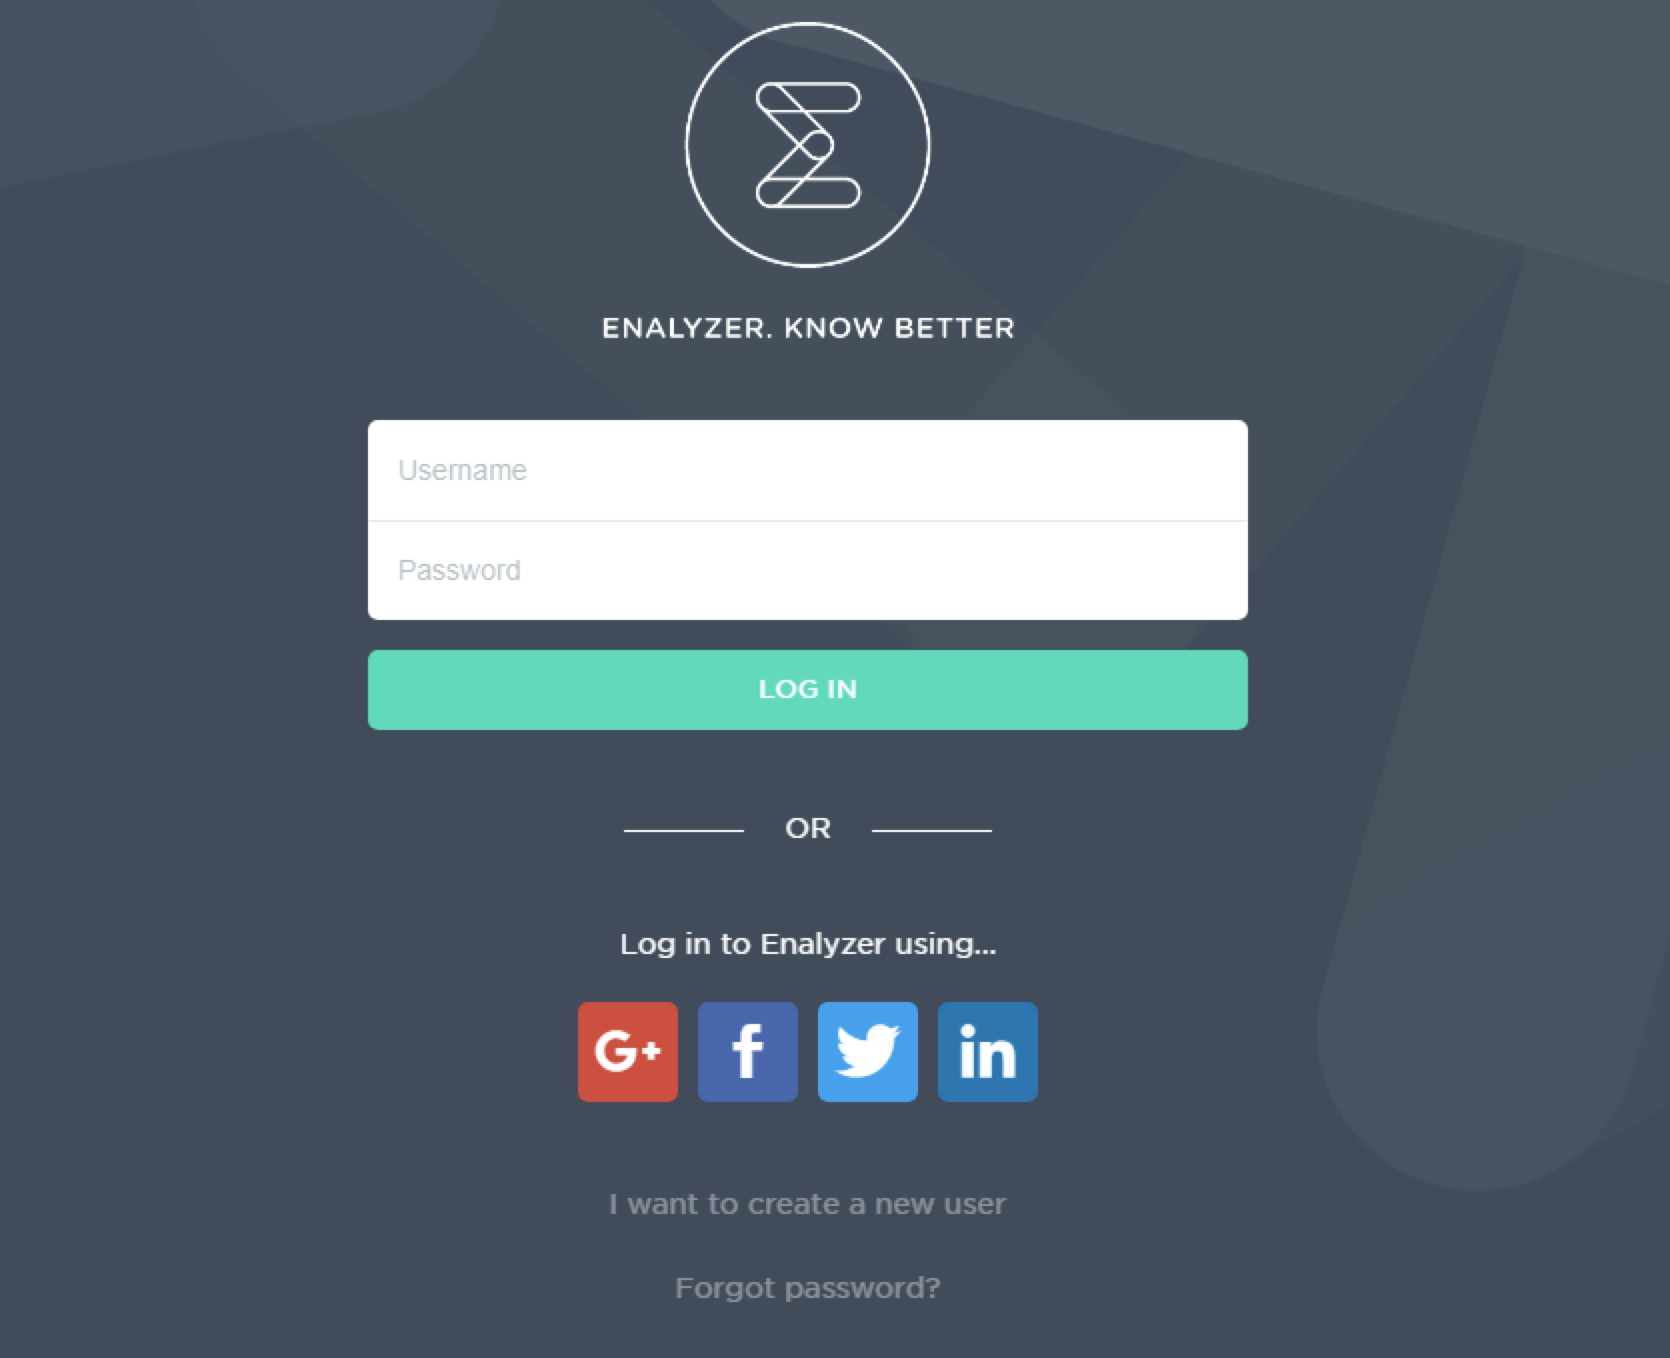 Login to Enalyzer